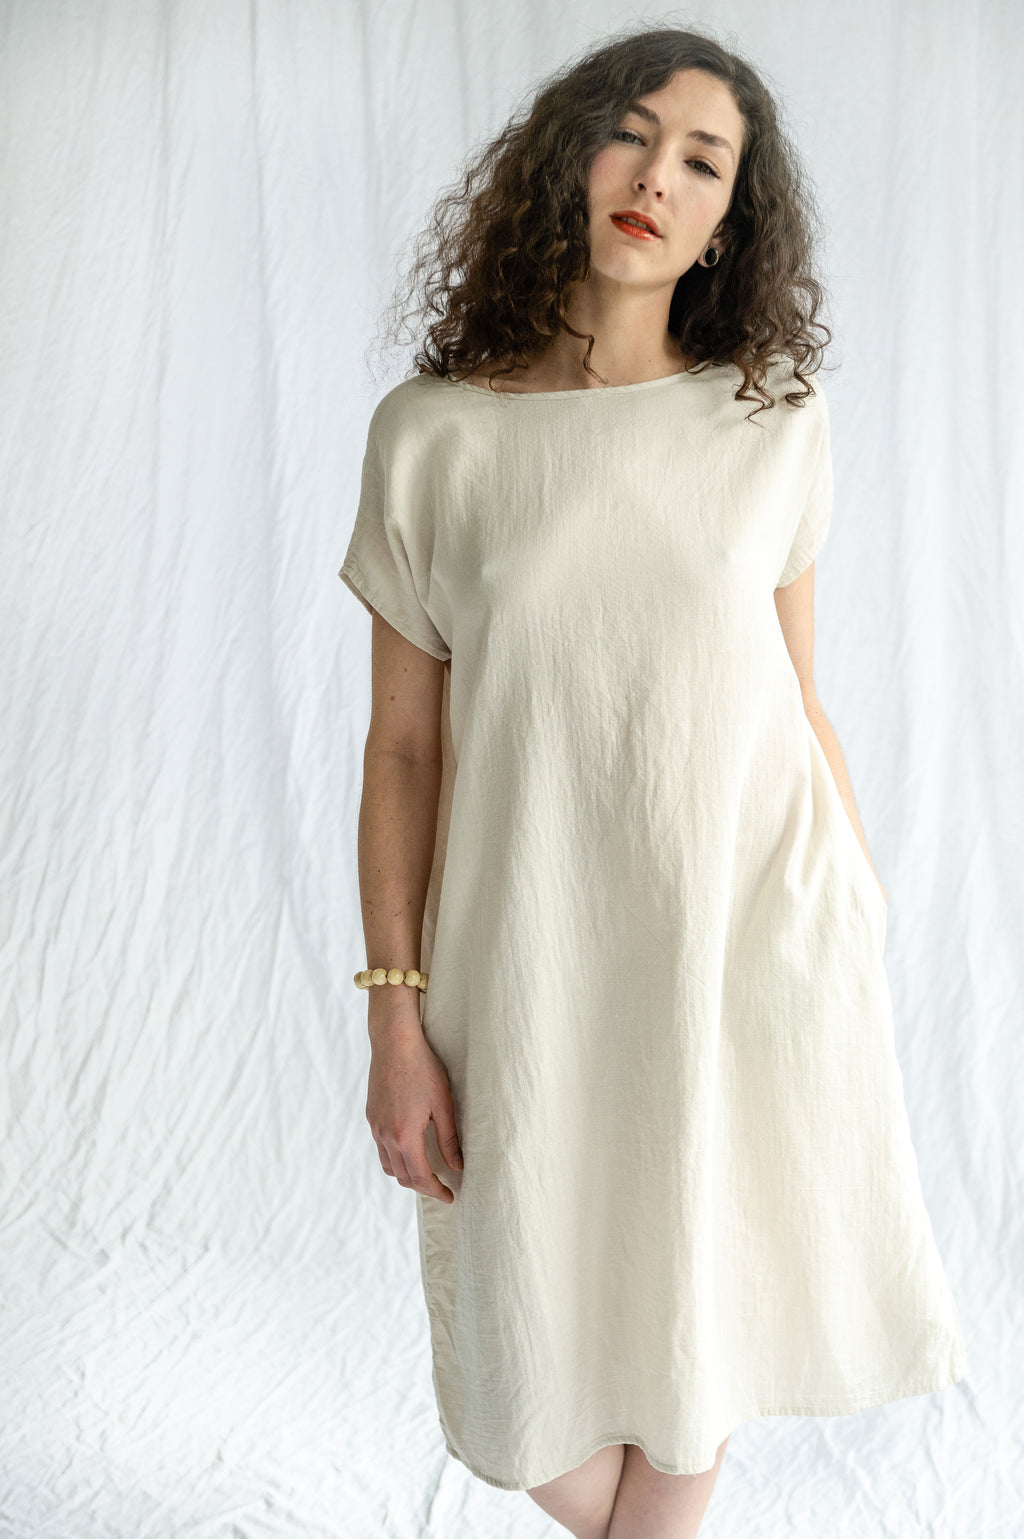 Pip-Squeak Chapeau Etc. Tee Gauze Dress